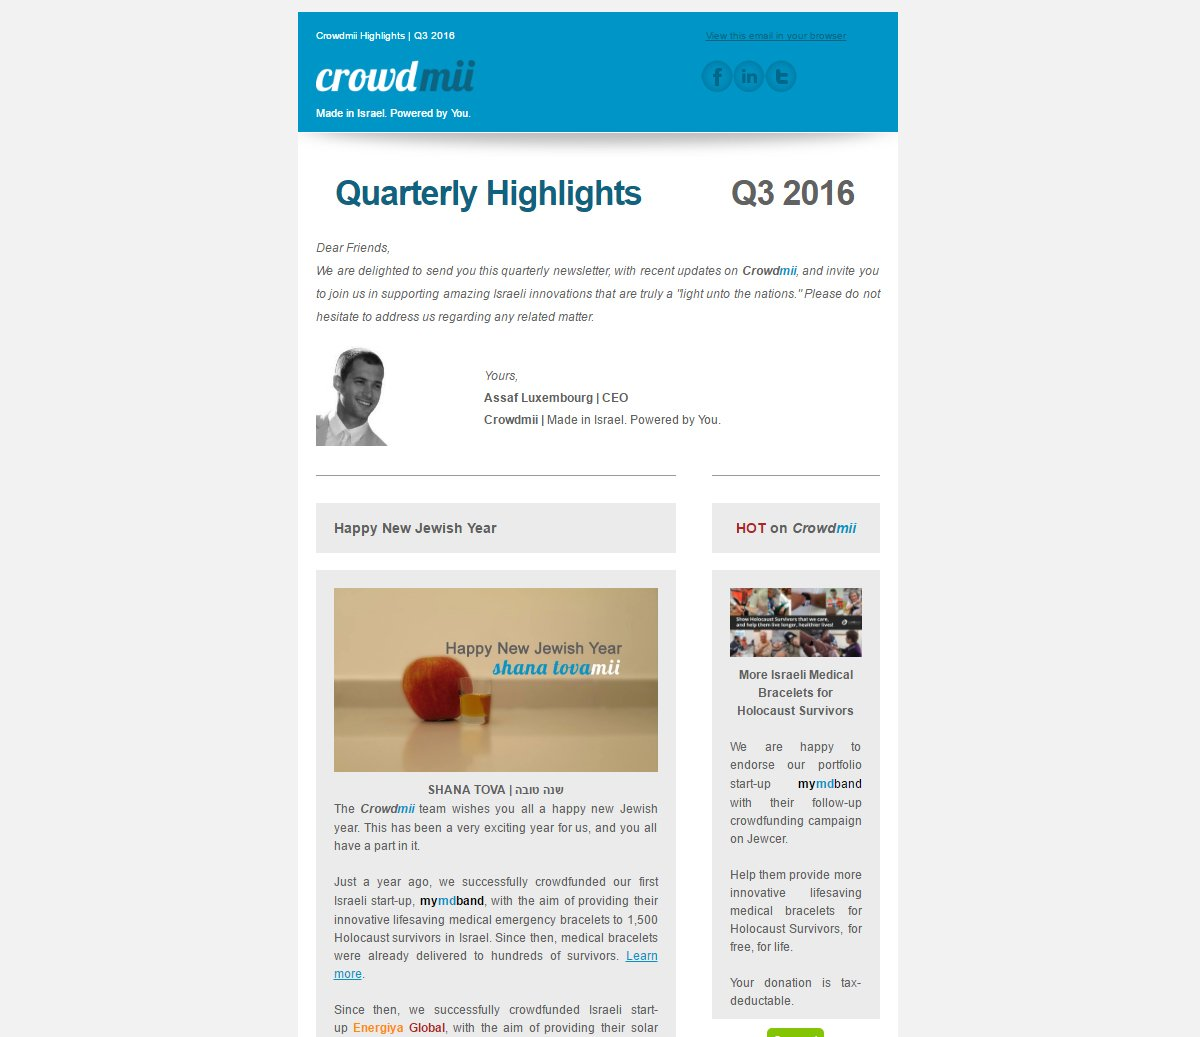 Our Q3 newsletter is out! Check out https://t.co/YwQpQnX5CM | #Israel #innovation #tech #crowdfunding #startup #entrepreneurship #TikkunOlam https://t.co/ZJ0eGpQxMA